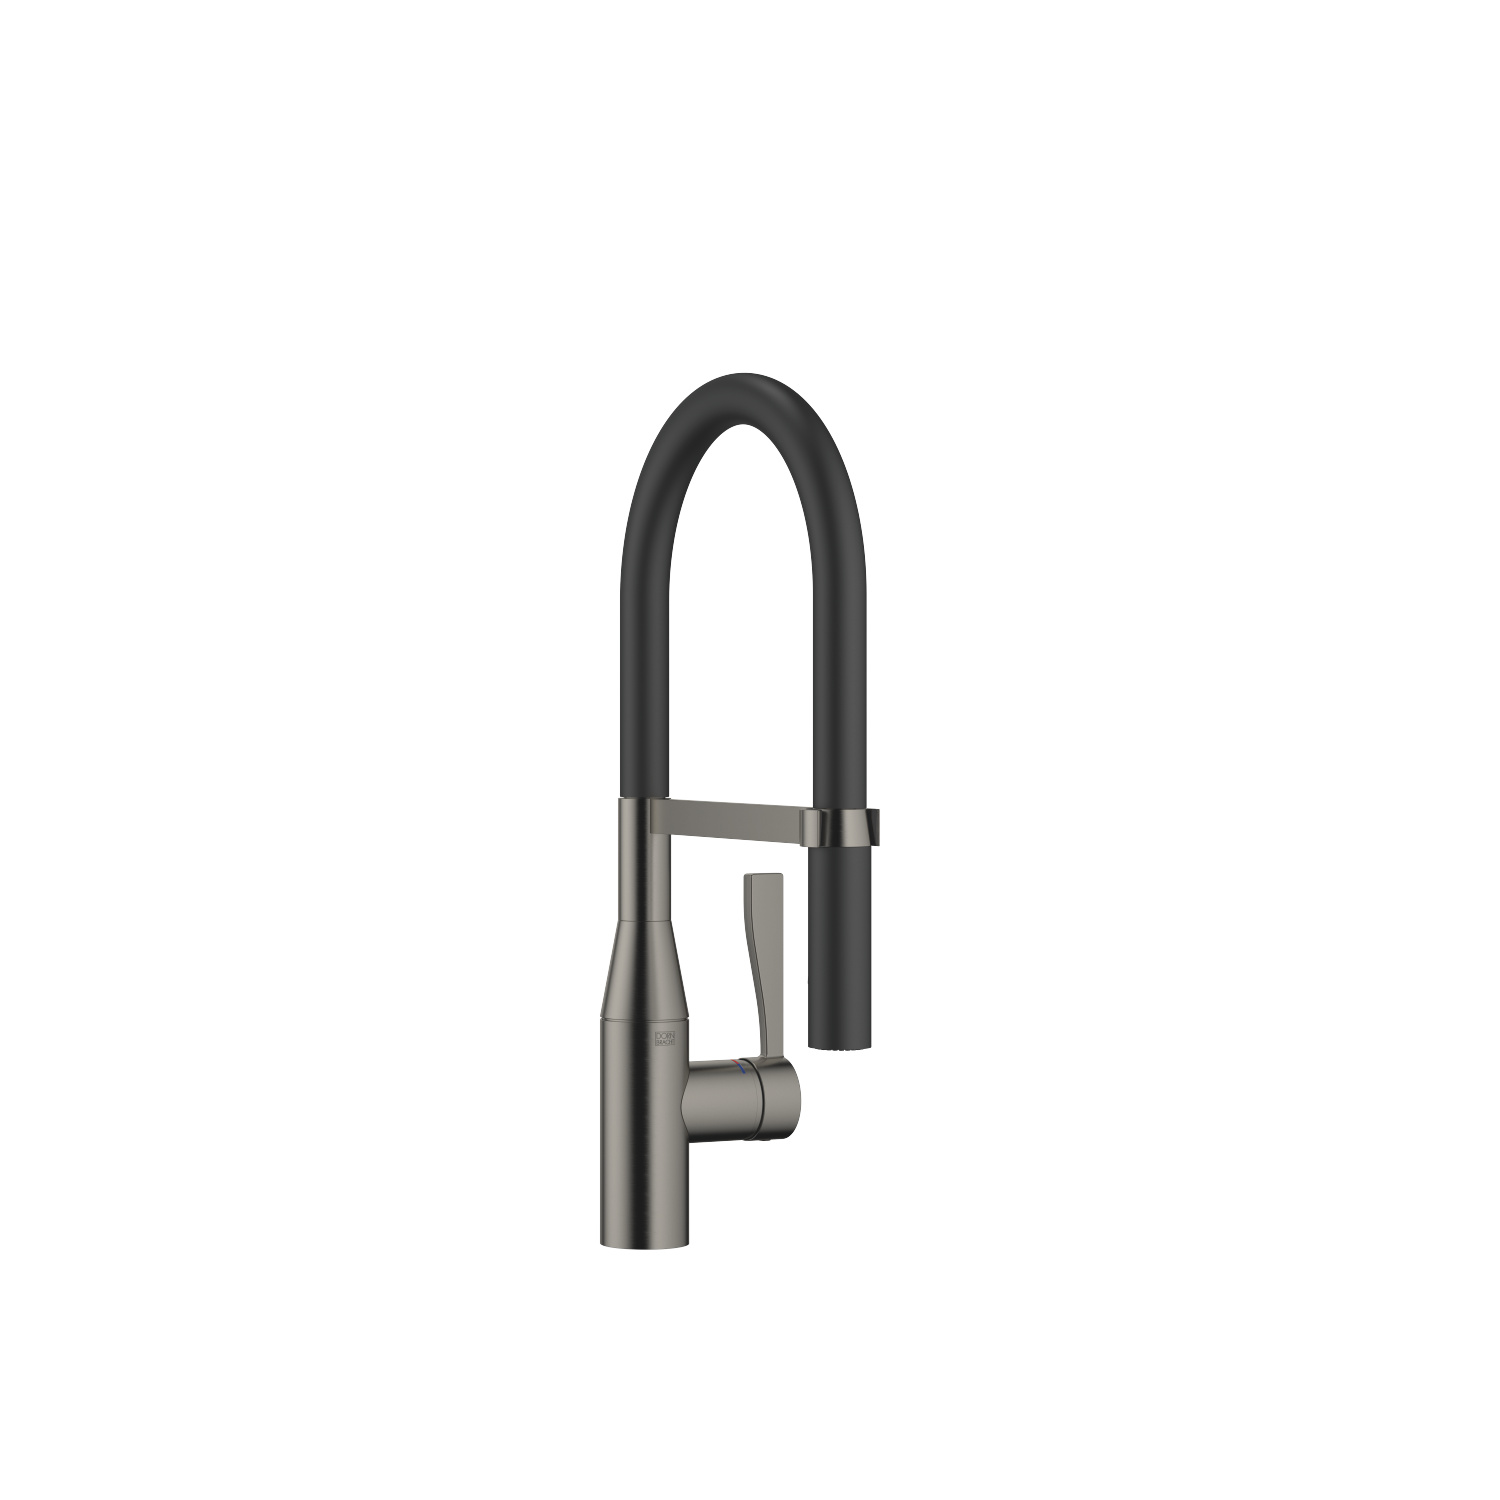 Profi single-lever mixer - Dark Platinum matt - 33 865 895-99